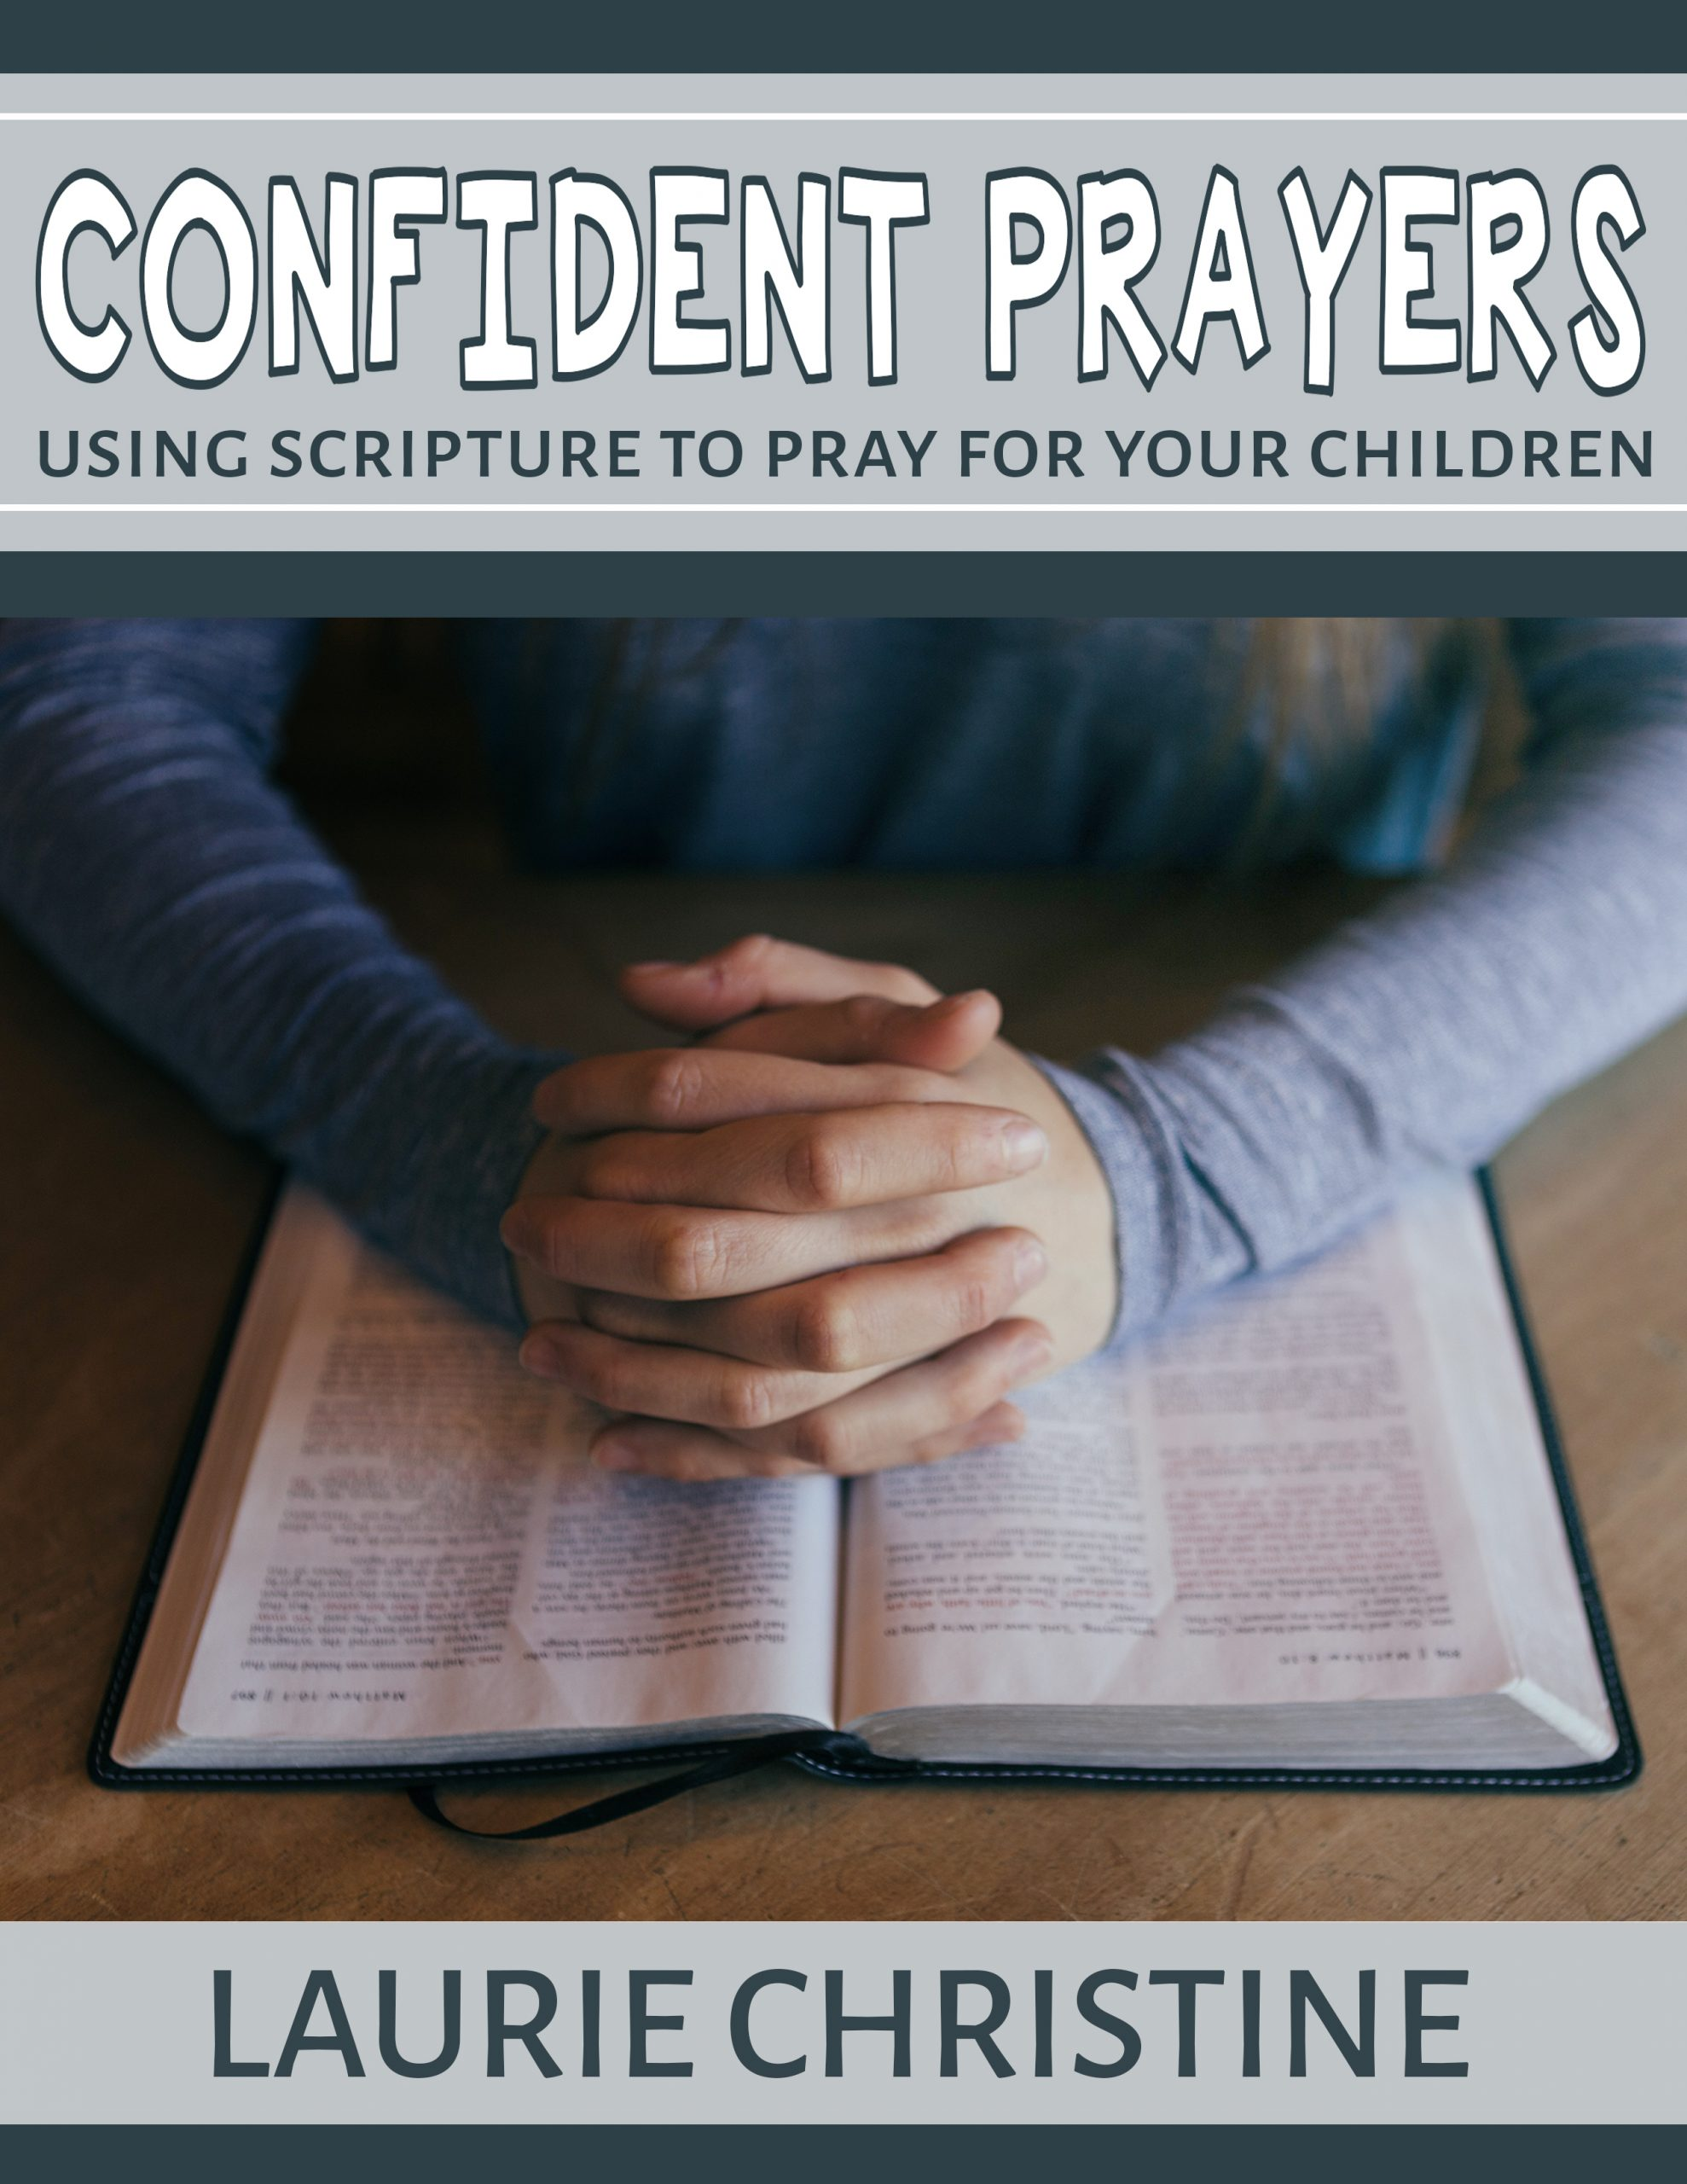 Confident Prayers, ebook, using scripture to pray for your children